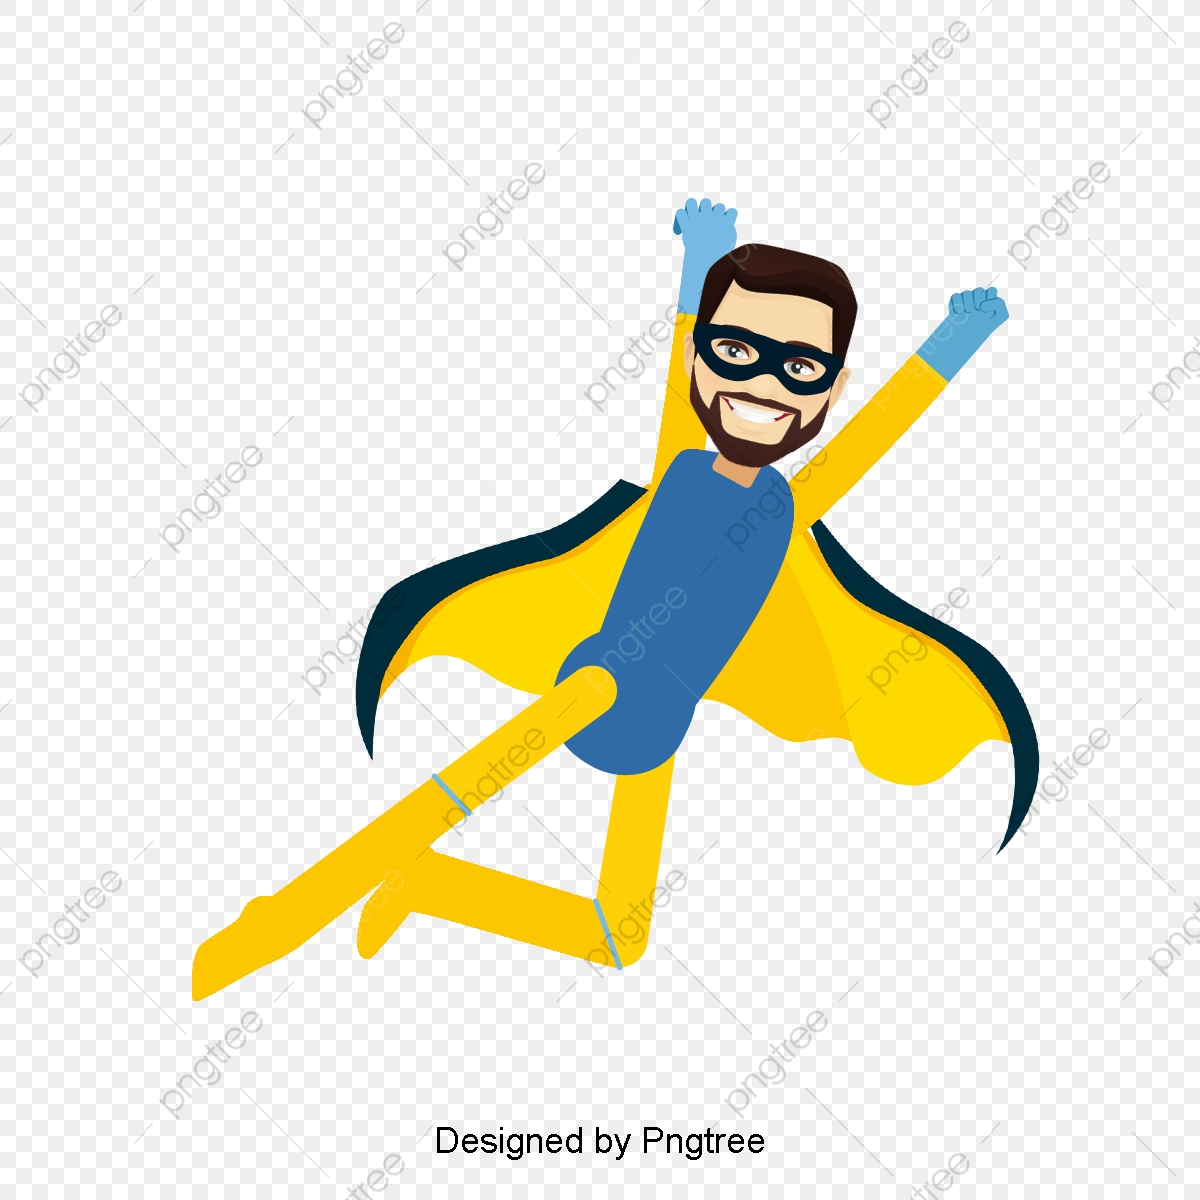 Flying Super Hero, Fly, Superman, Super Hero PNG Transparent Clipart.